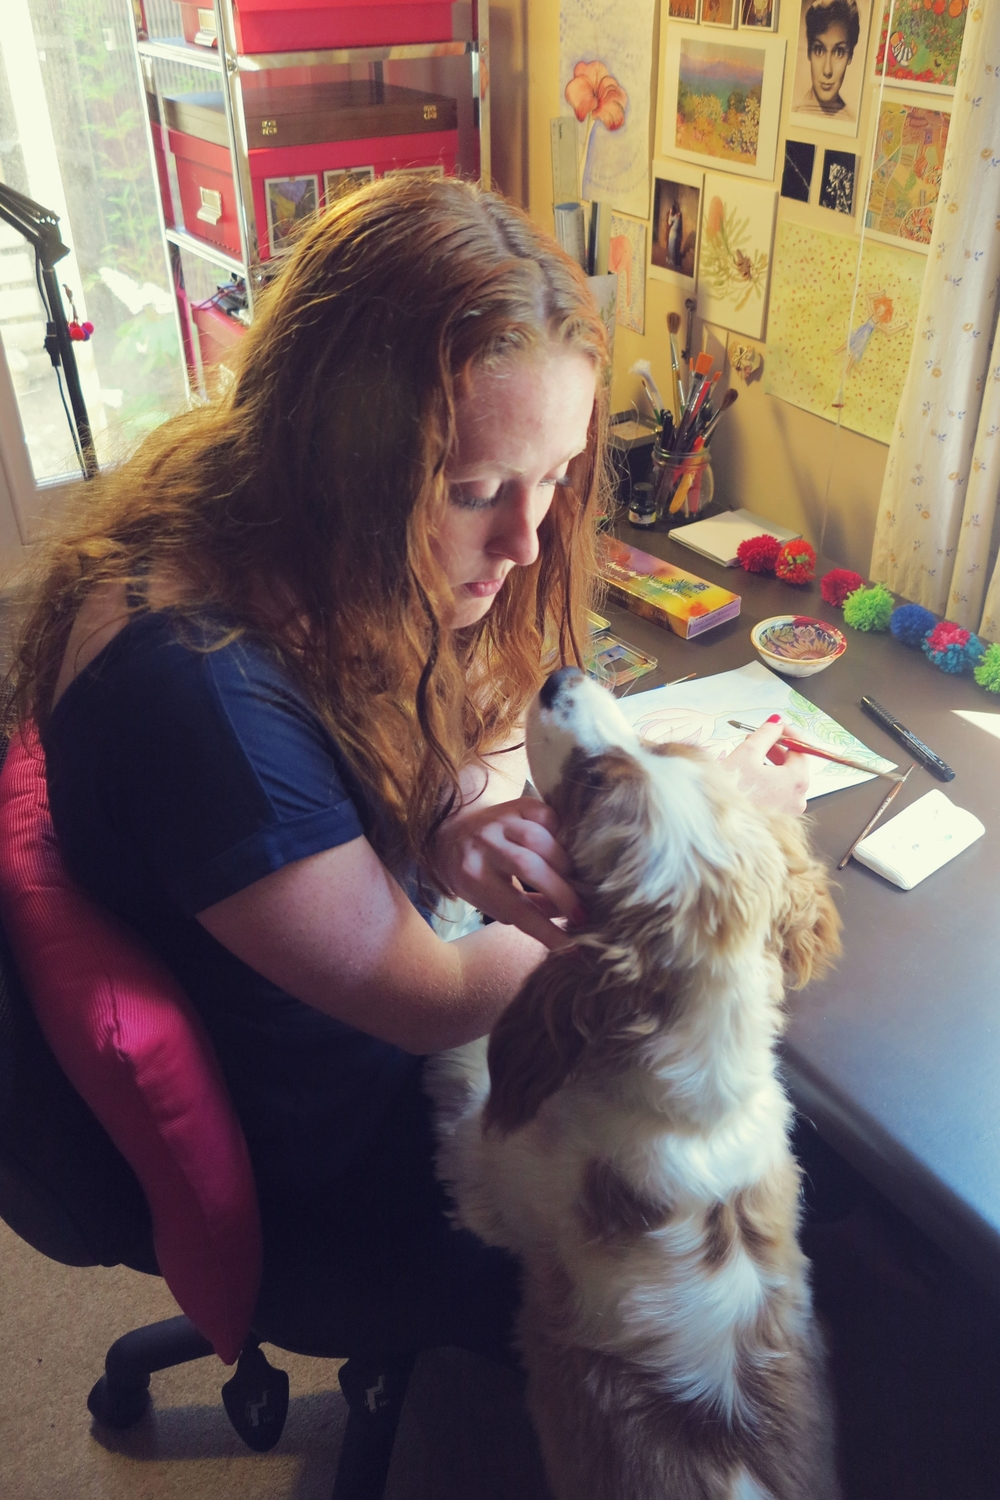 Michelle with her dog, Lochie.